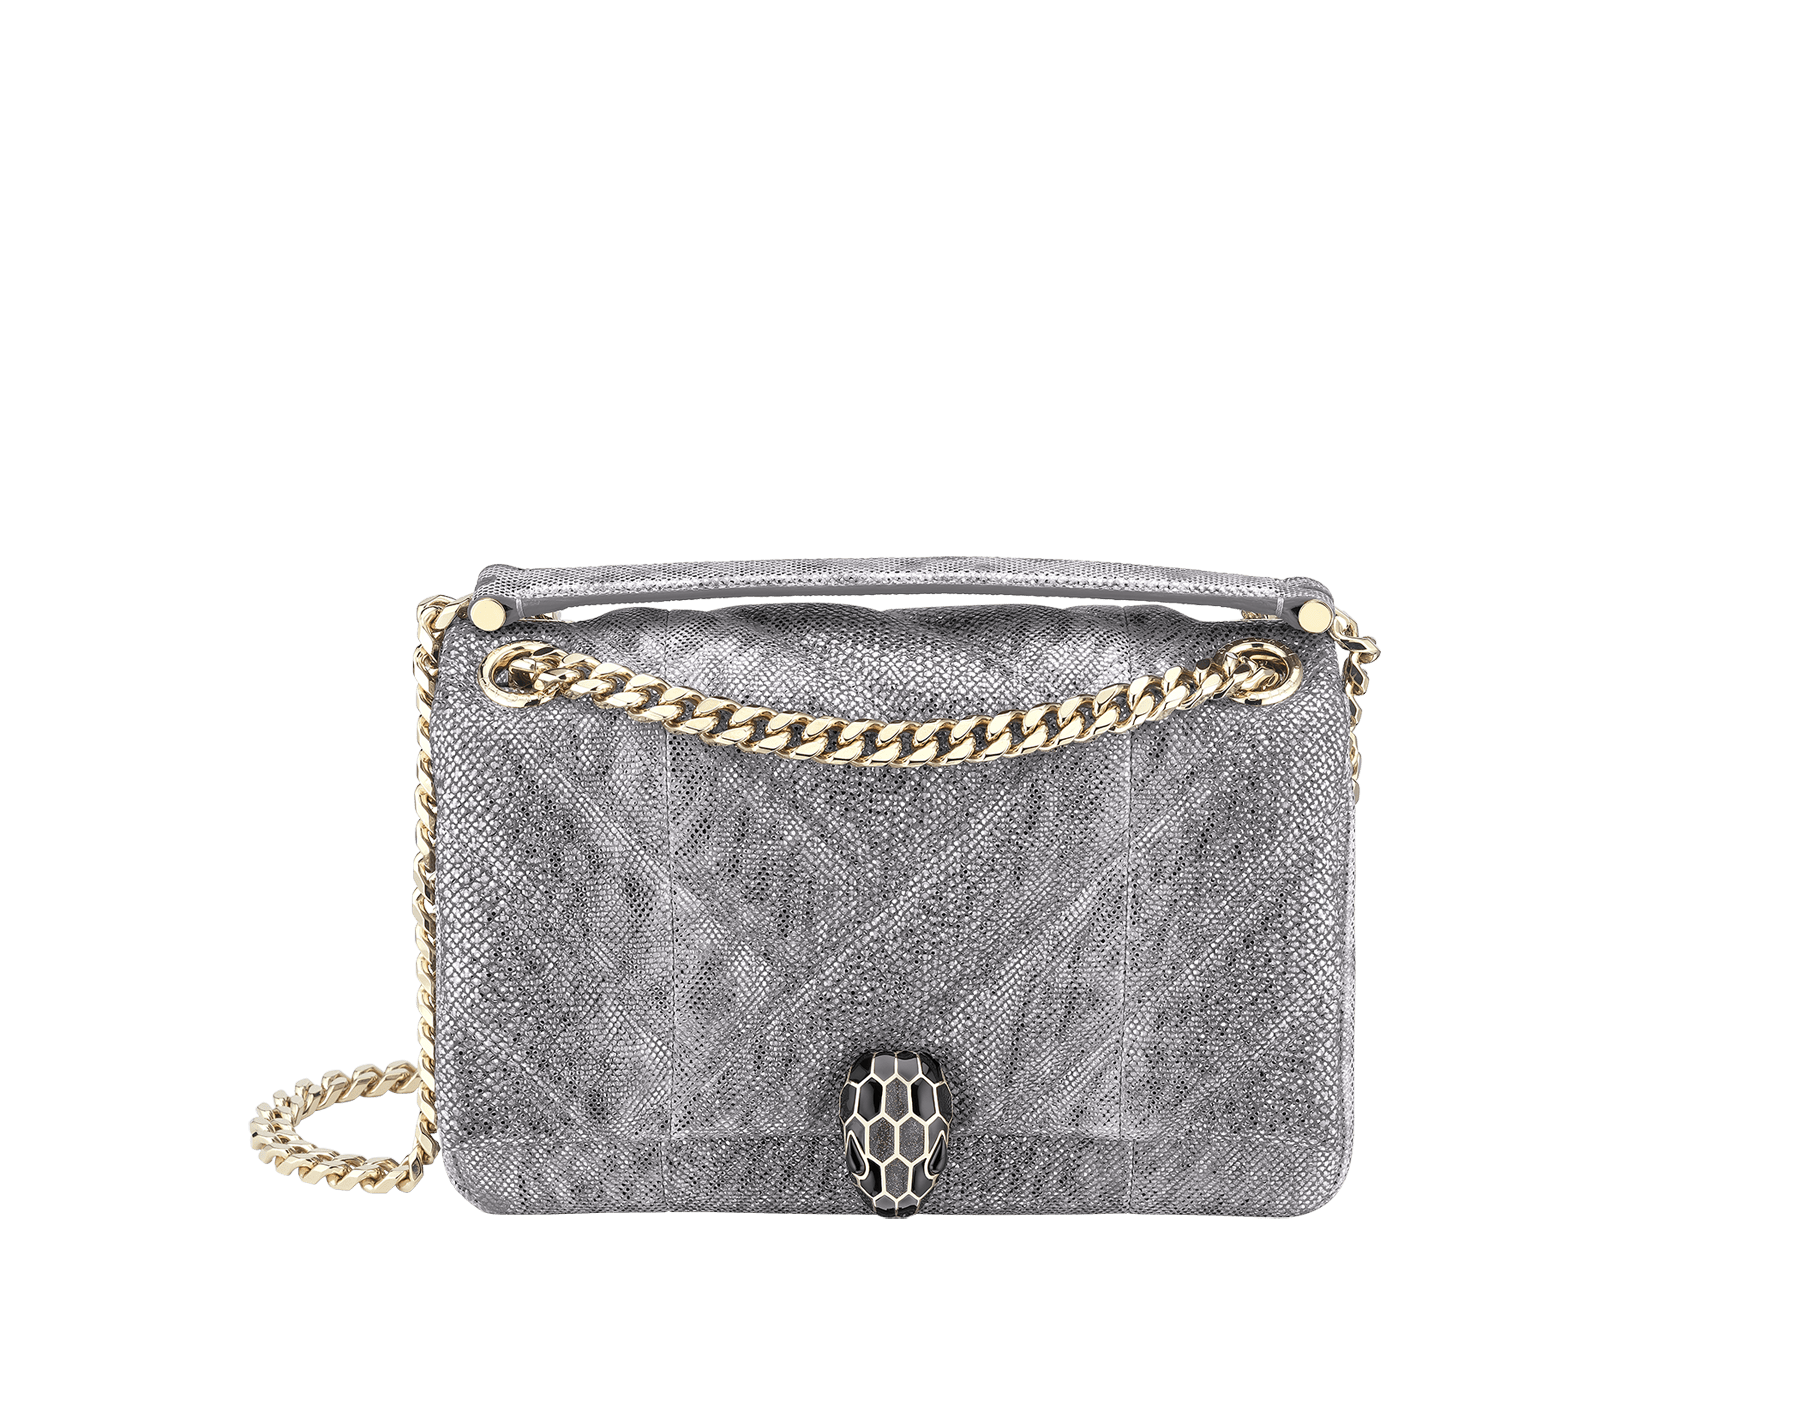 Serpenti Cabochon shoulder bag in soft matelassé charcoal diamond metallic karung skin with graphic motif. Snakehead closure in light gold plated brass decorated with matte black and glitter charcoal diamond enamel, and black onyx eyes. 288617 image 1